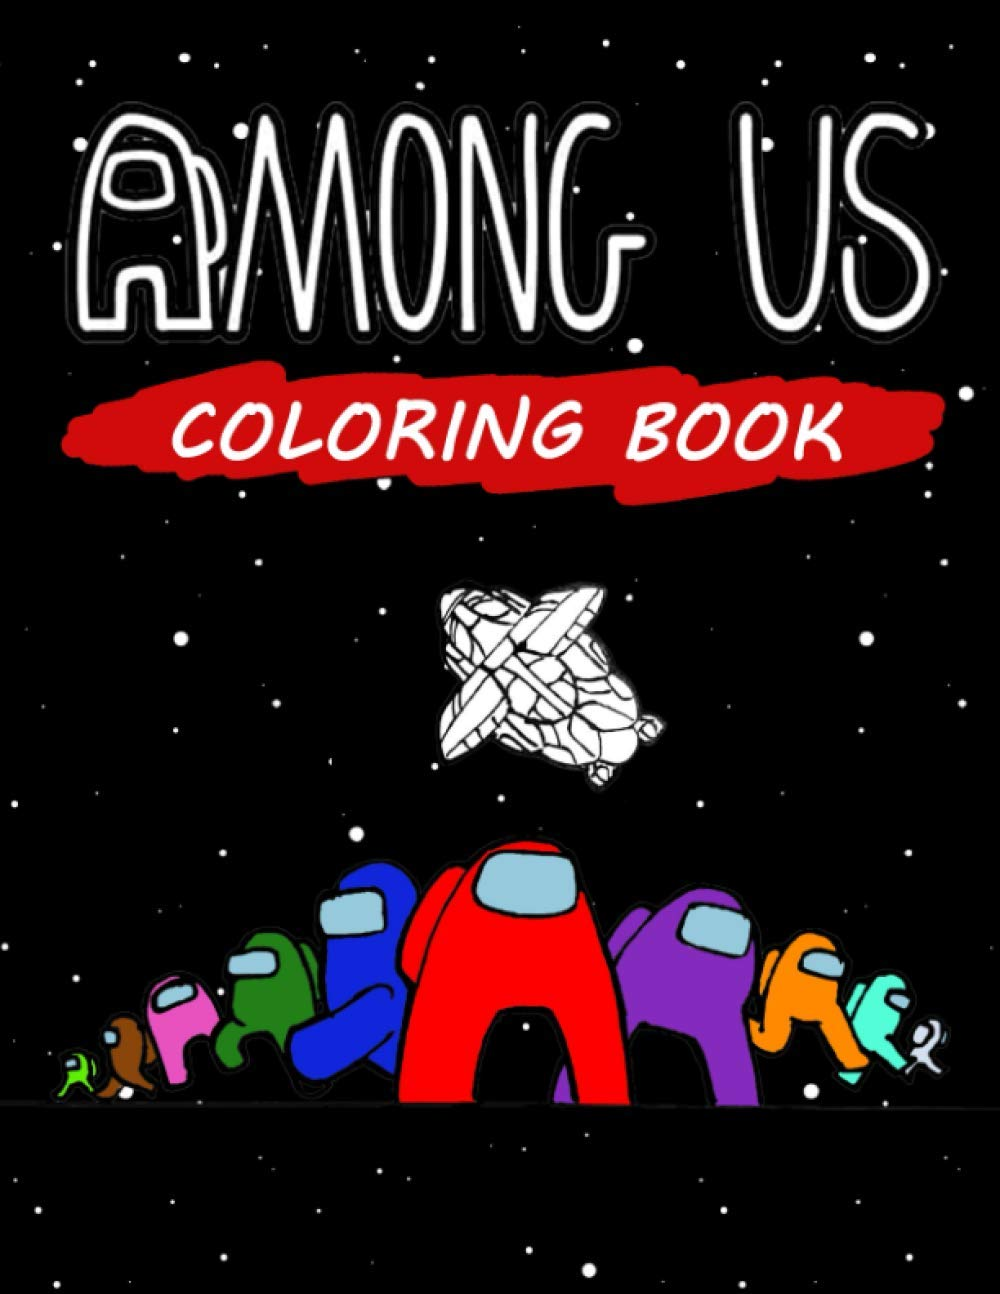 Among Us Coloring Book For Kids and Adults: Impostors and Crewmates Designs (+50 Premium Coloring Pages) The Best Way To Relax And Relieve Stress - Large 8.5x11 vol.1